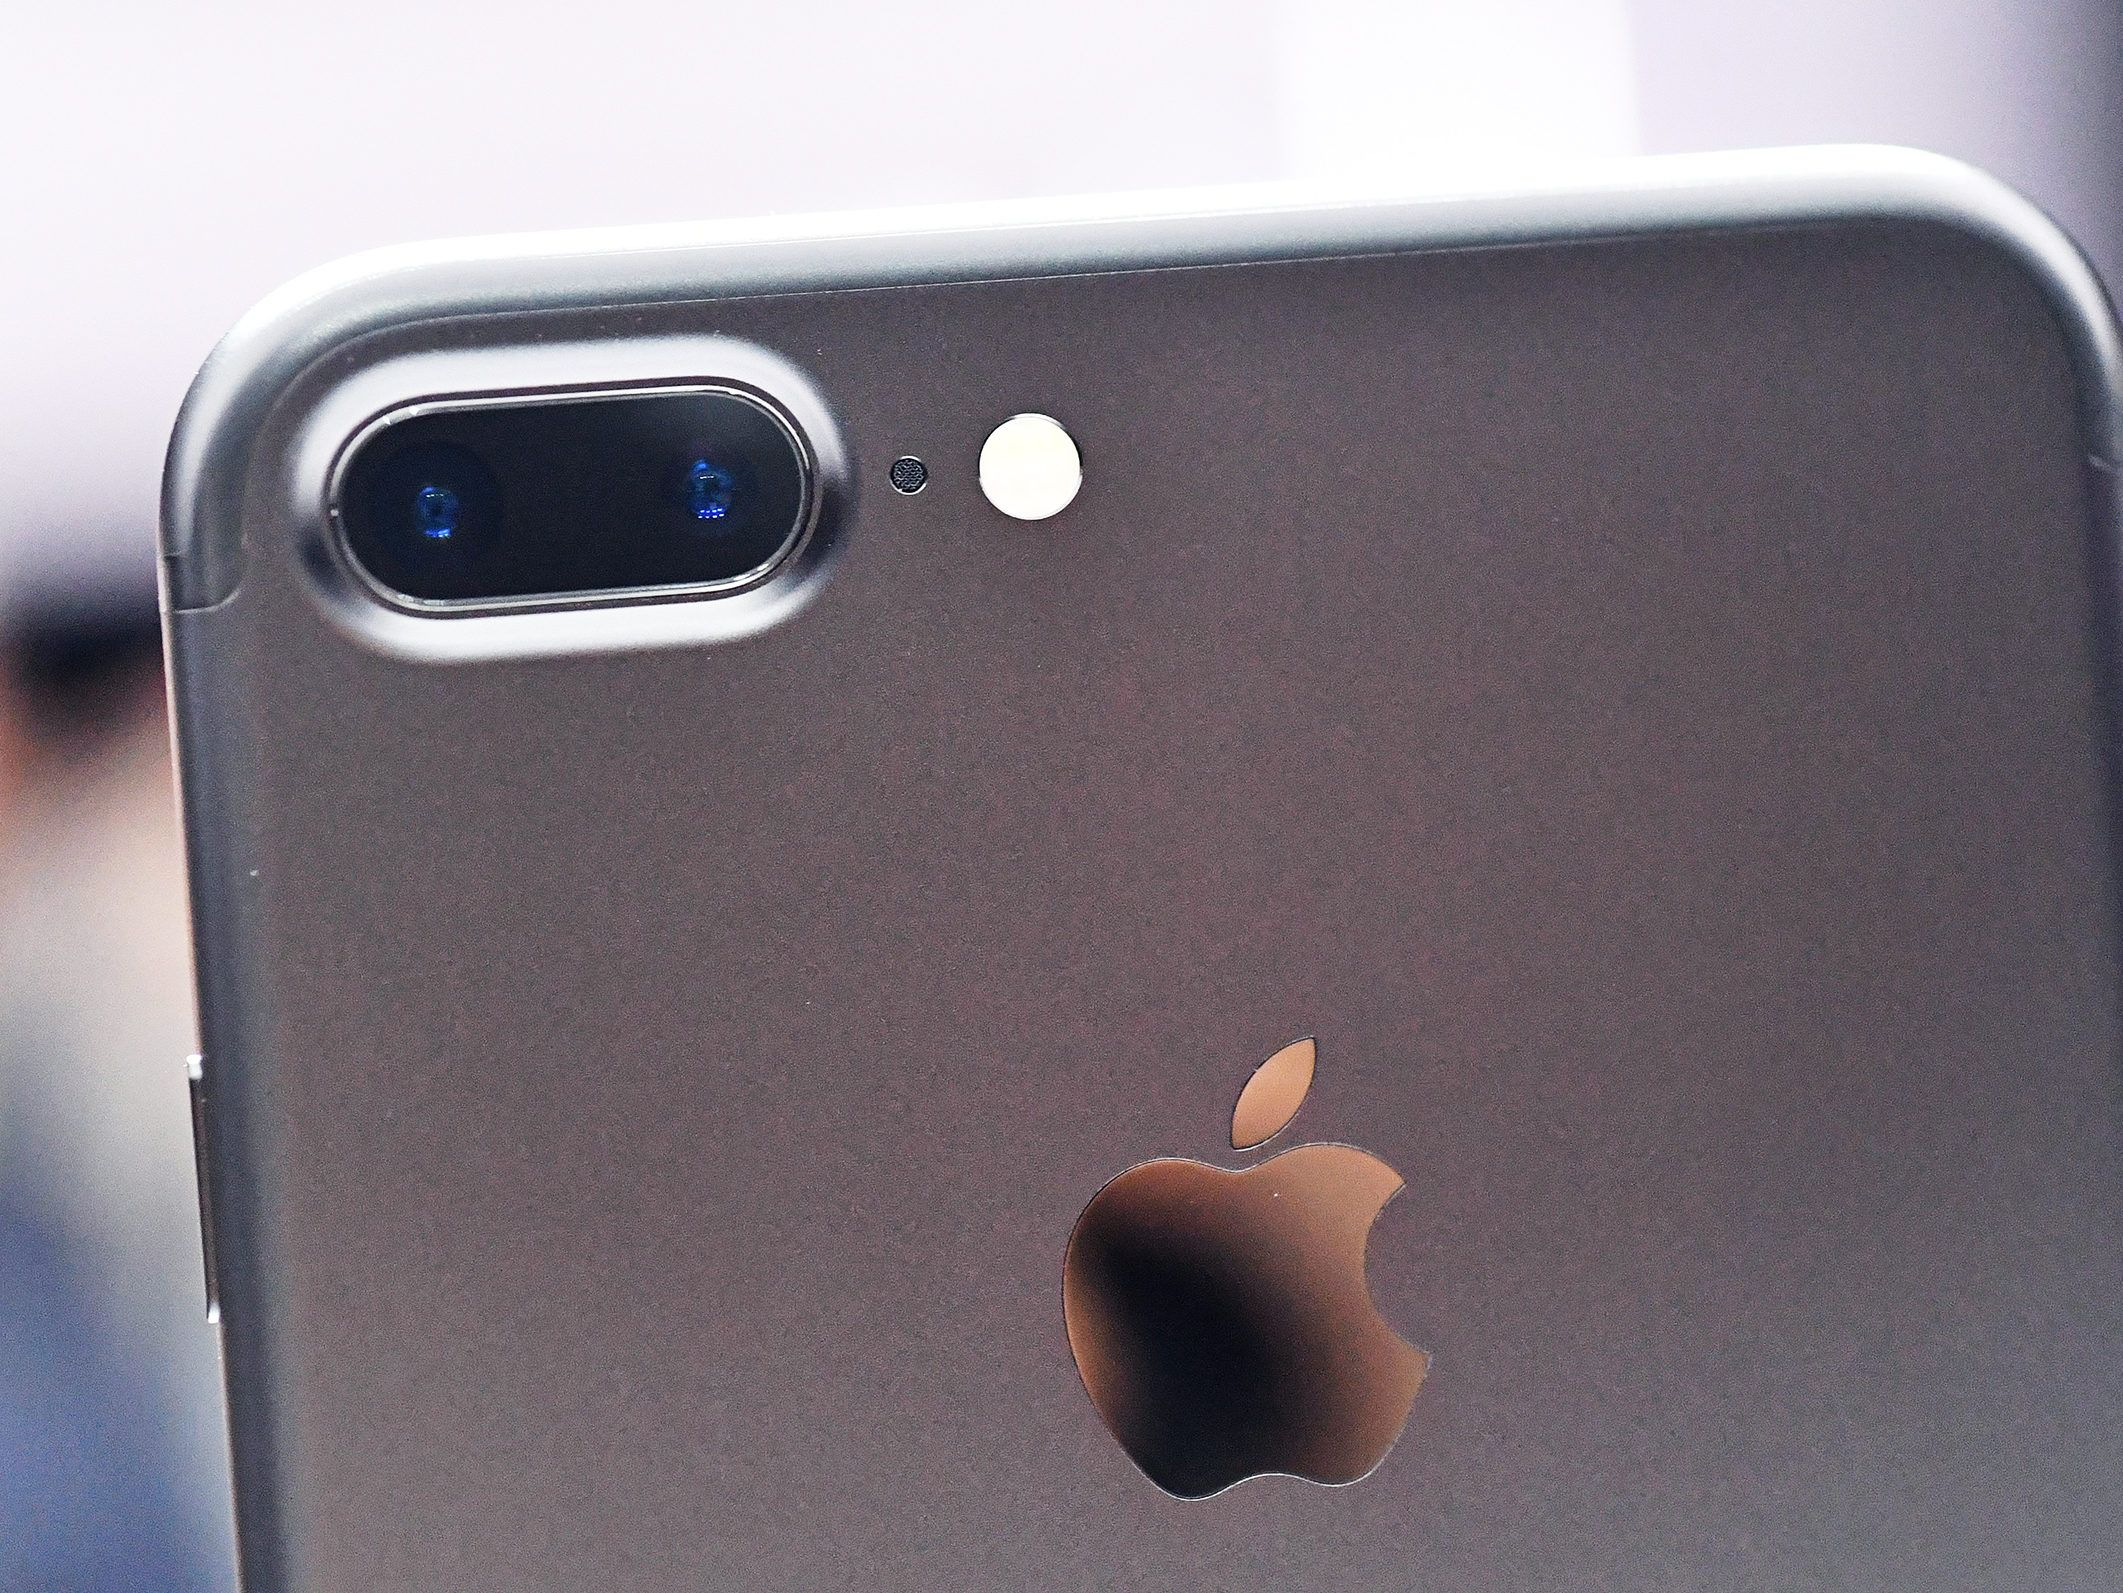 With The Iphone 7 Apple Makes Dual Cameras The New Normal Iphone Iphone 7 Plus Price Iphone 7 Plus